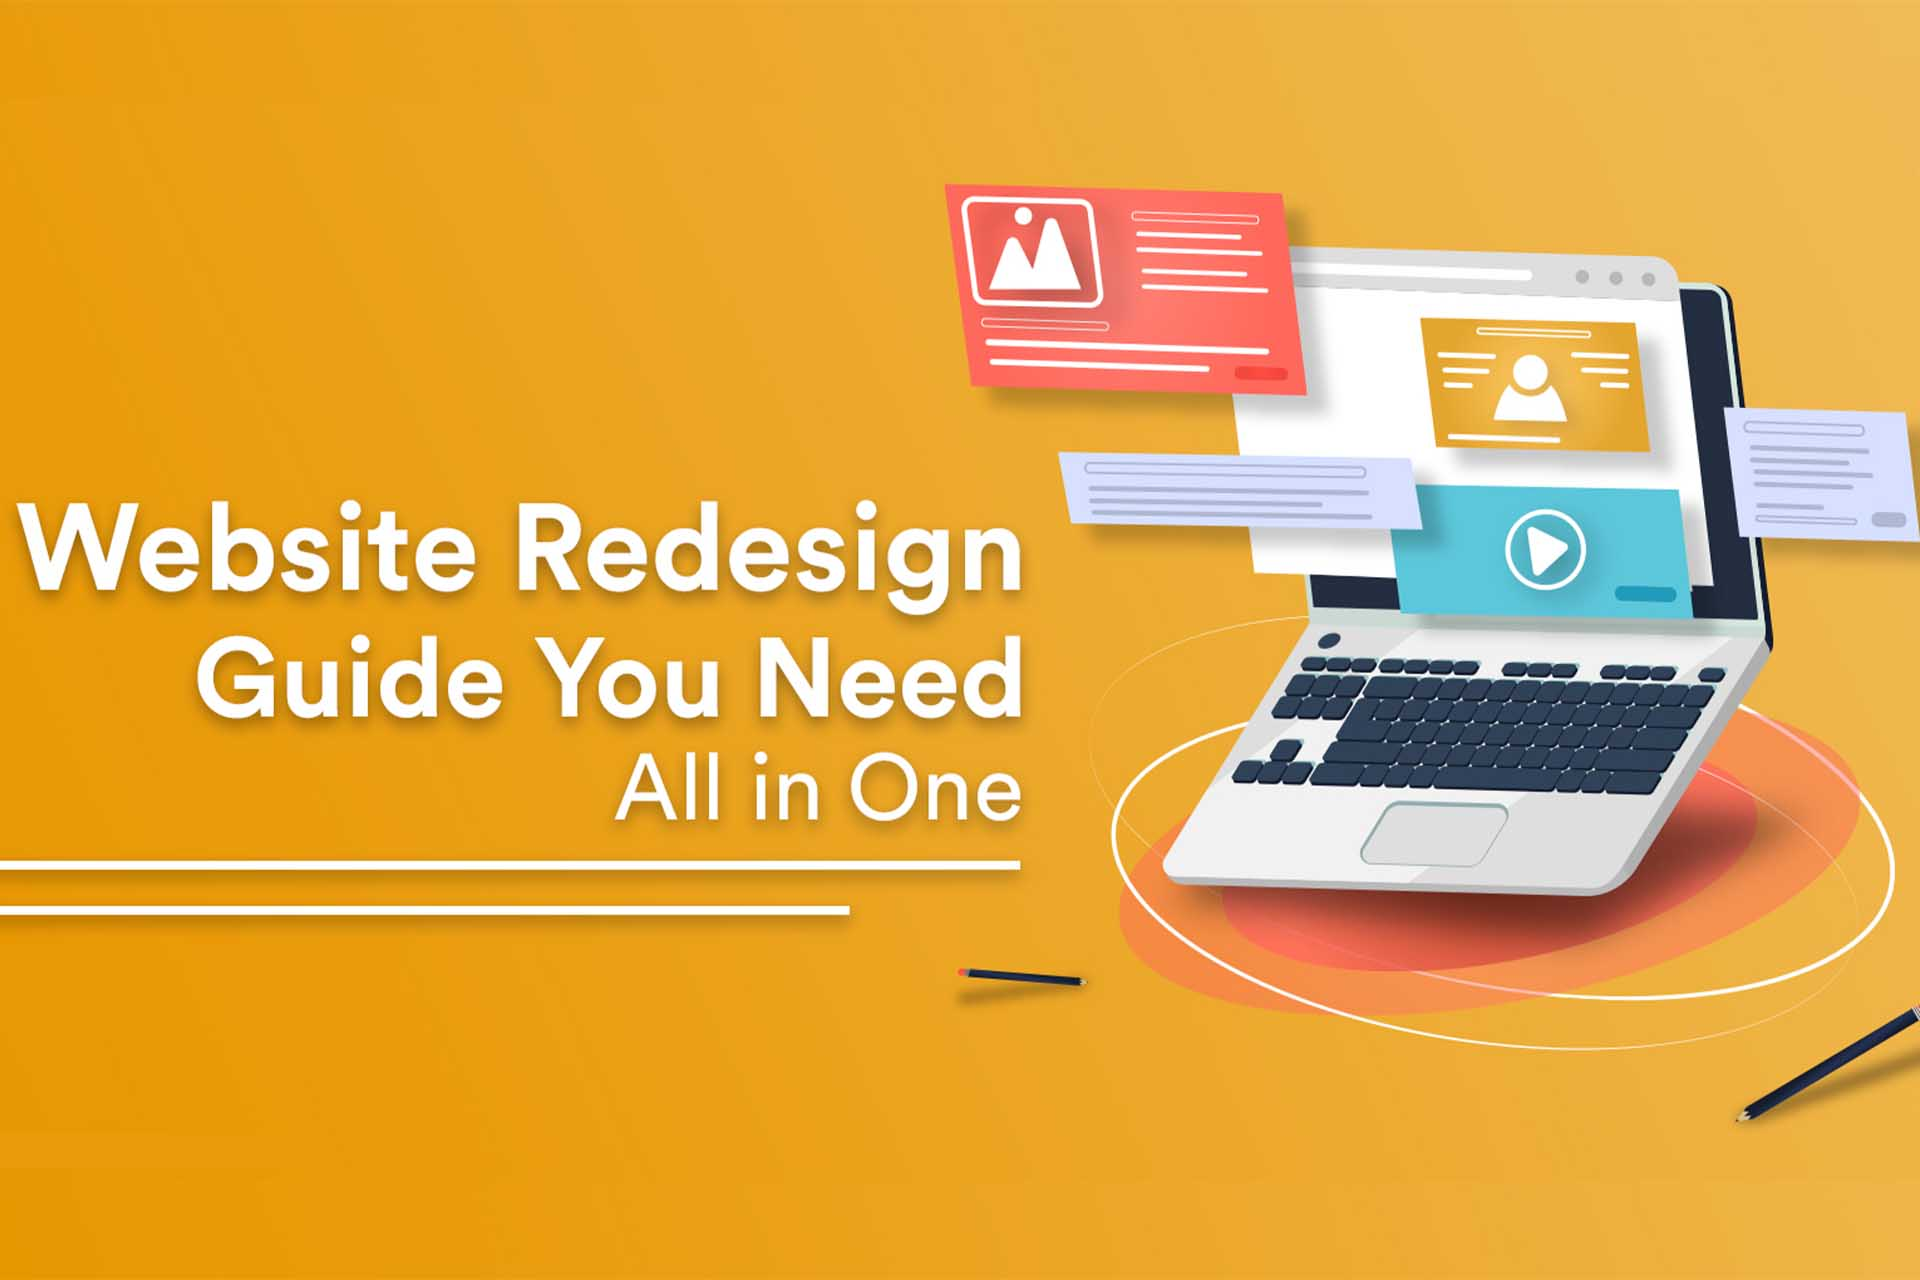 What you should expect From a Website Redesign